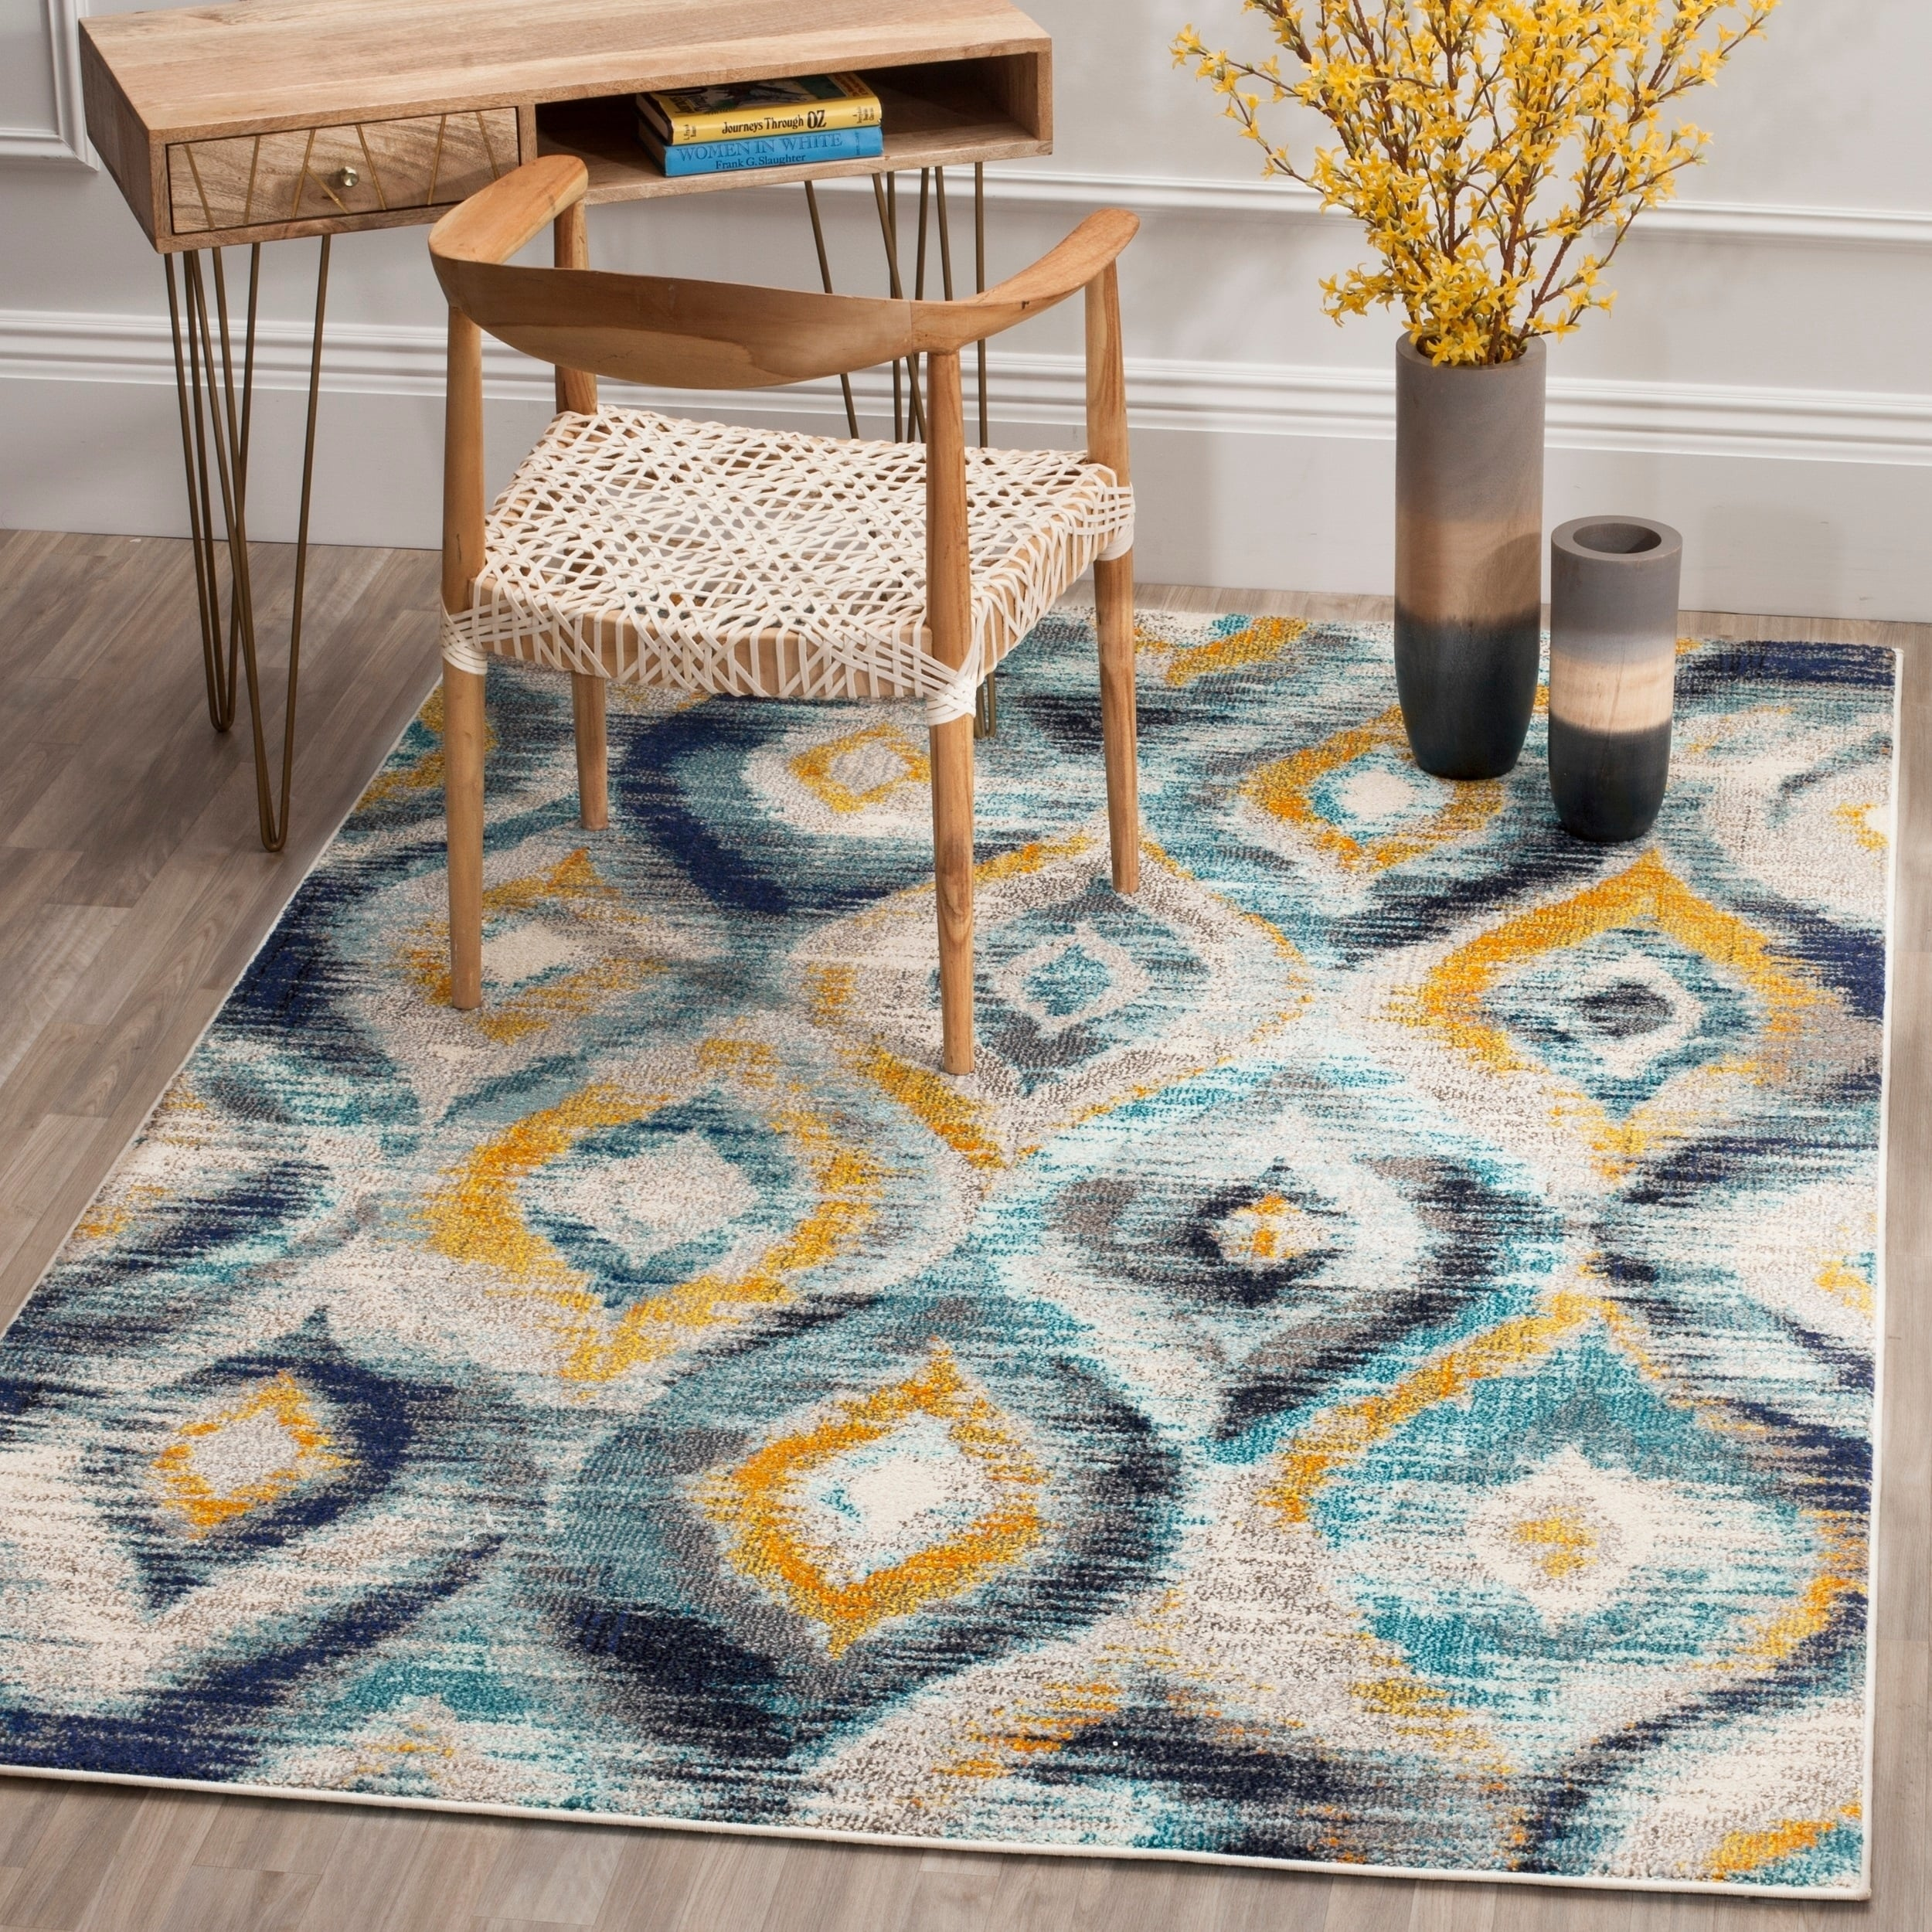 7x9 - 10x14 Rugs Online Area Deals